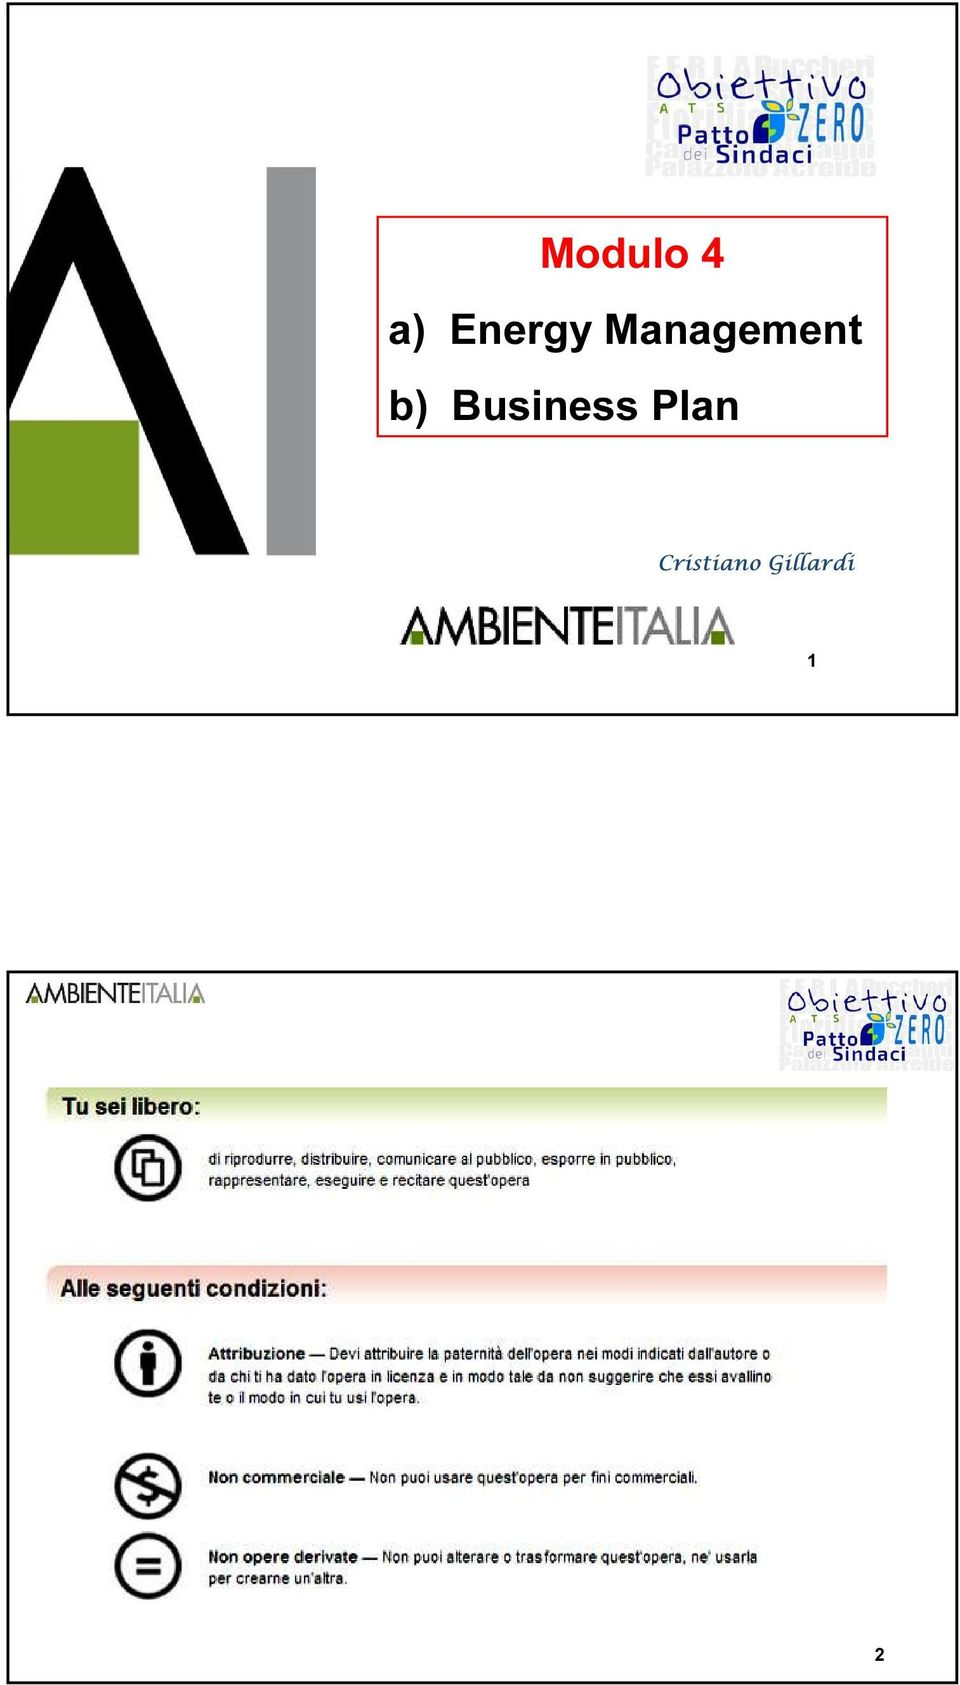 b) Business Plan